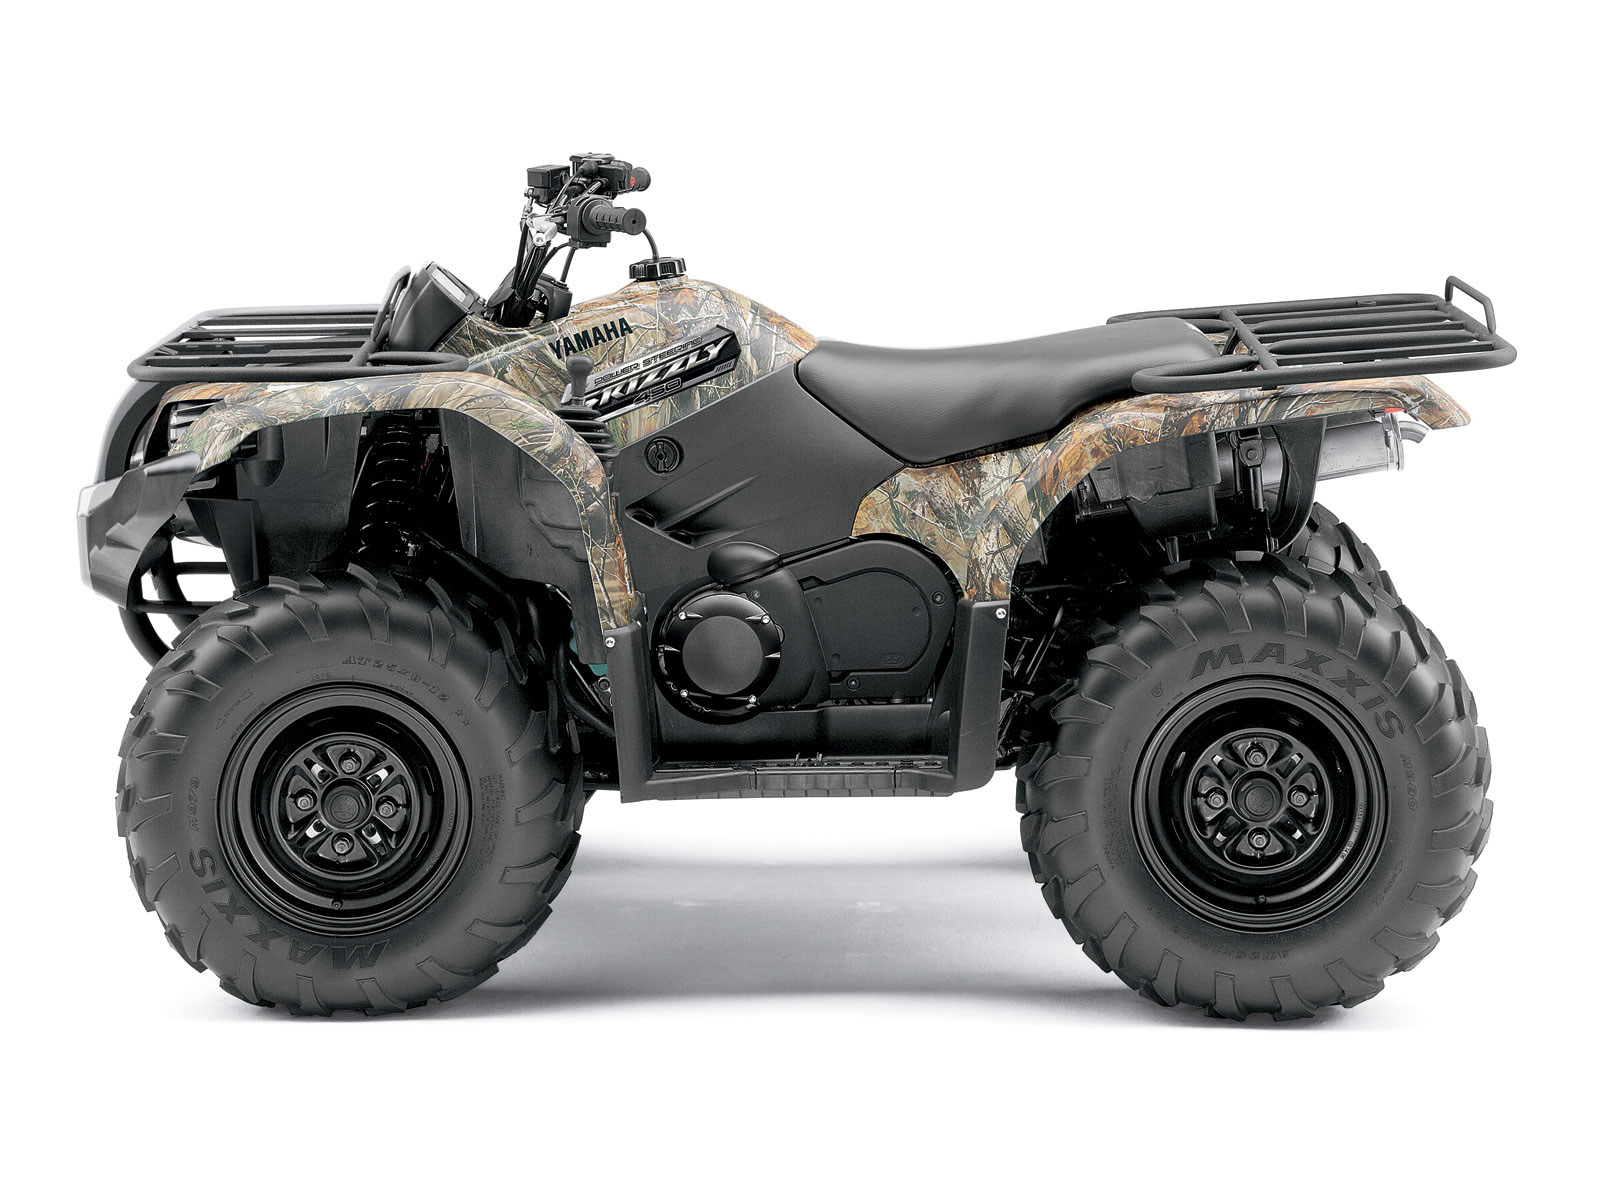 2012 Yamaha Grizzly 450 Auto 4x4 EPS ATV pictures